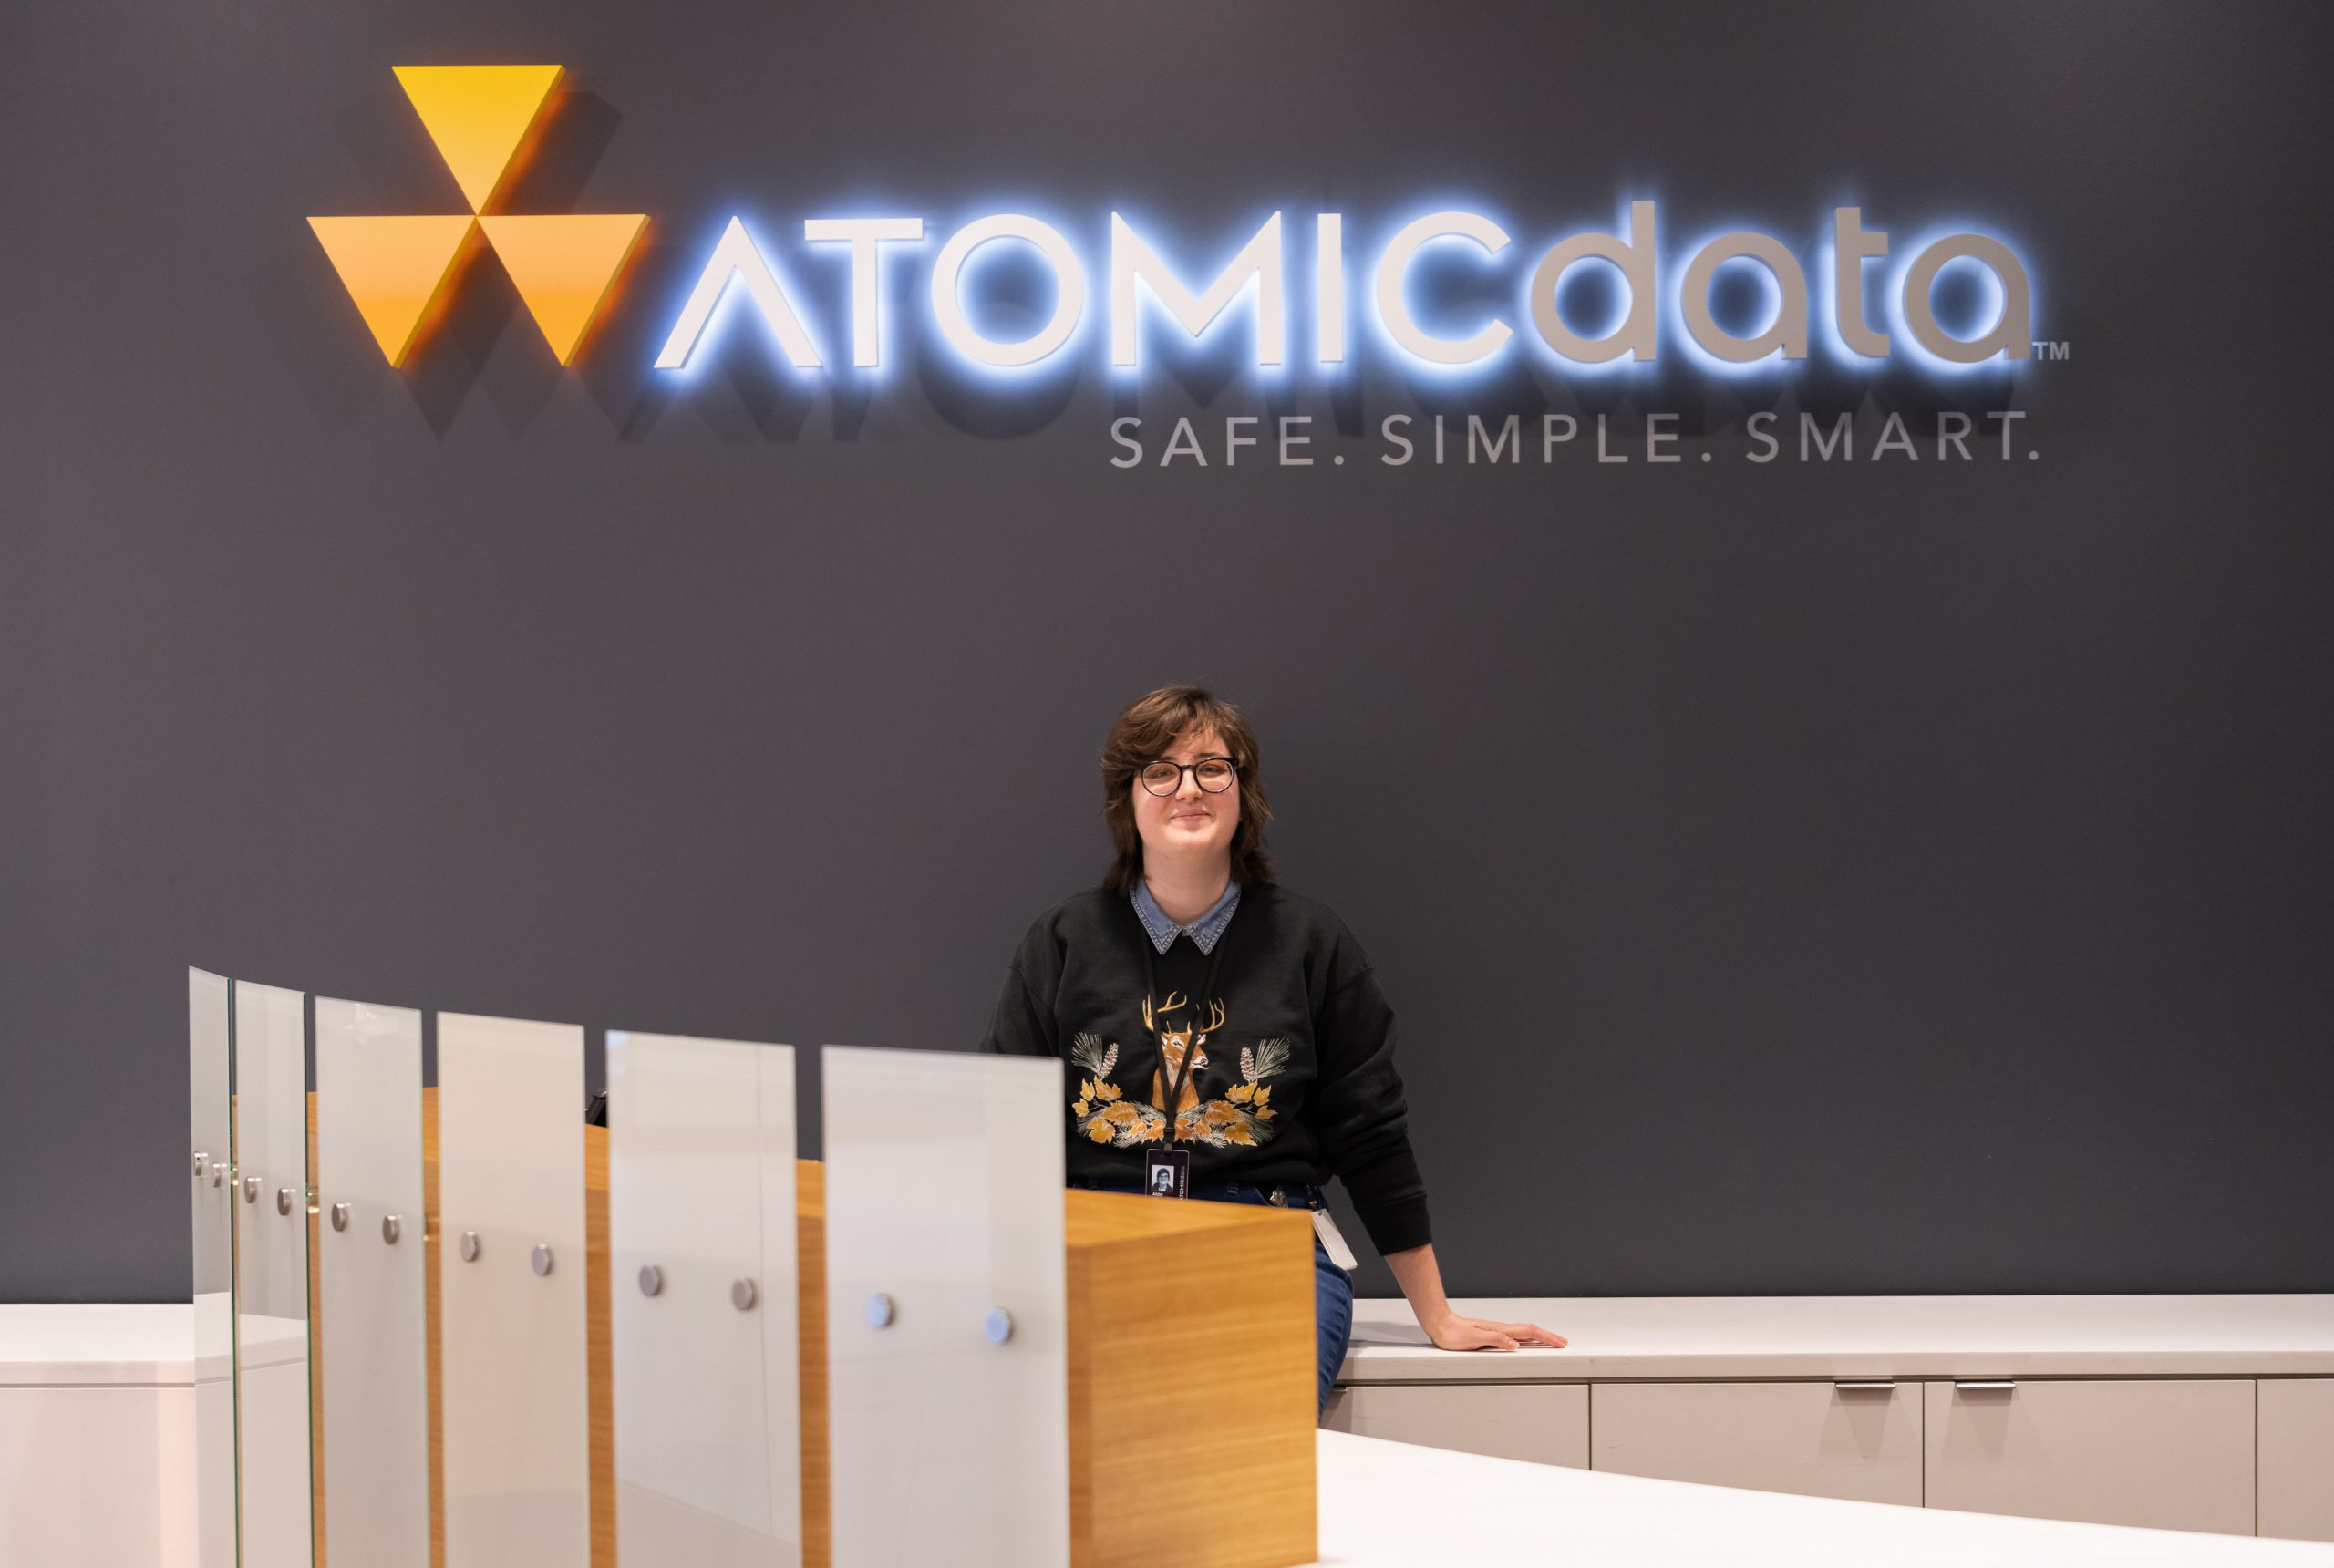 Abby Engle in front of Atomic Data sign